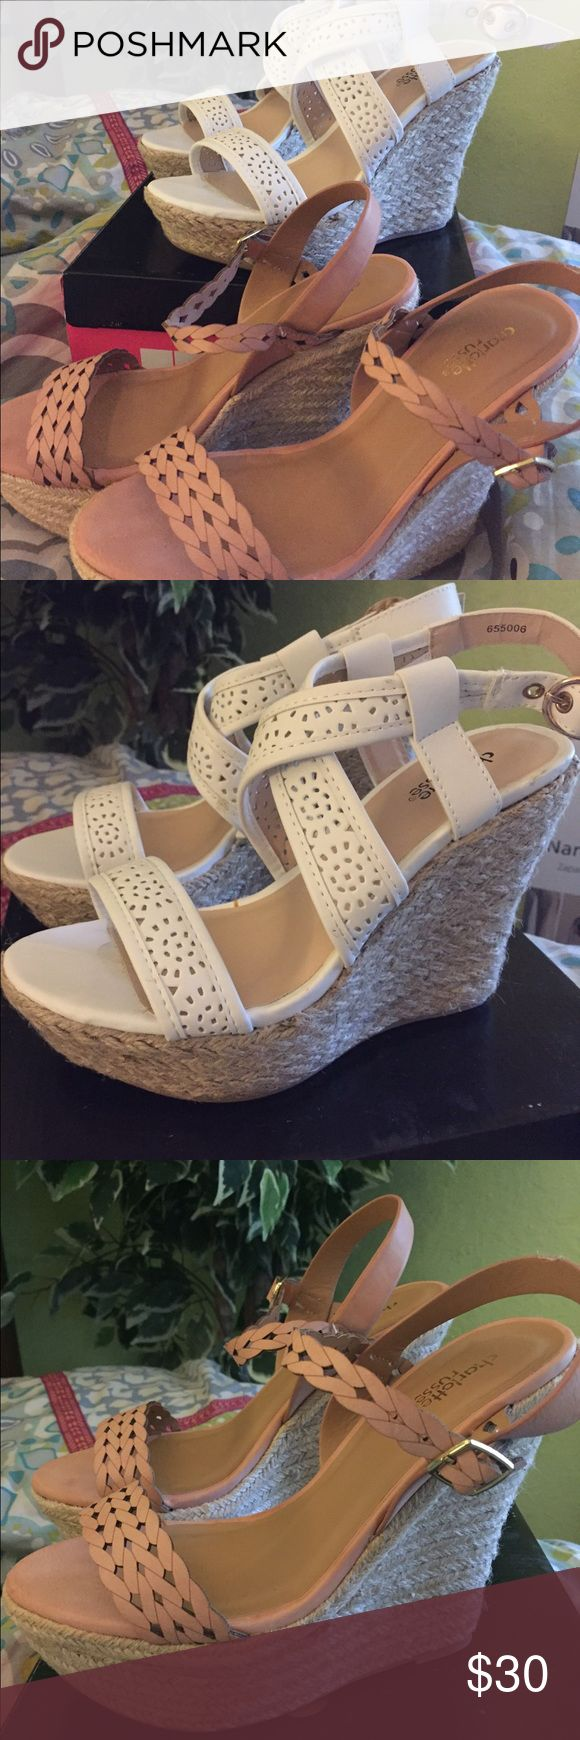 2 pairs Charlotte Russe wedge sandals size 7 Really cute wedge sandals !! 2 pairs . Both New never worn . Size 7. No boxes . Charlotte Russe Shoes Wedges